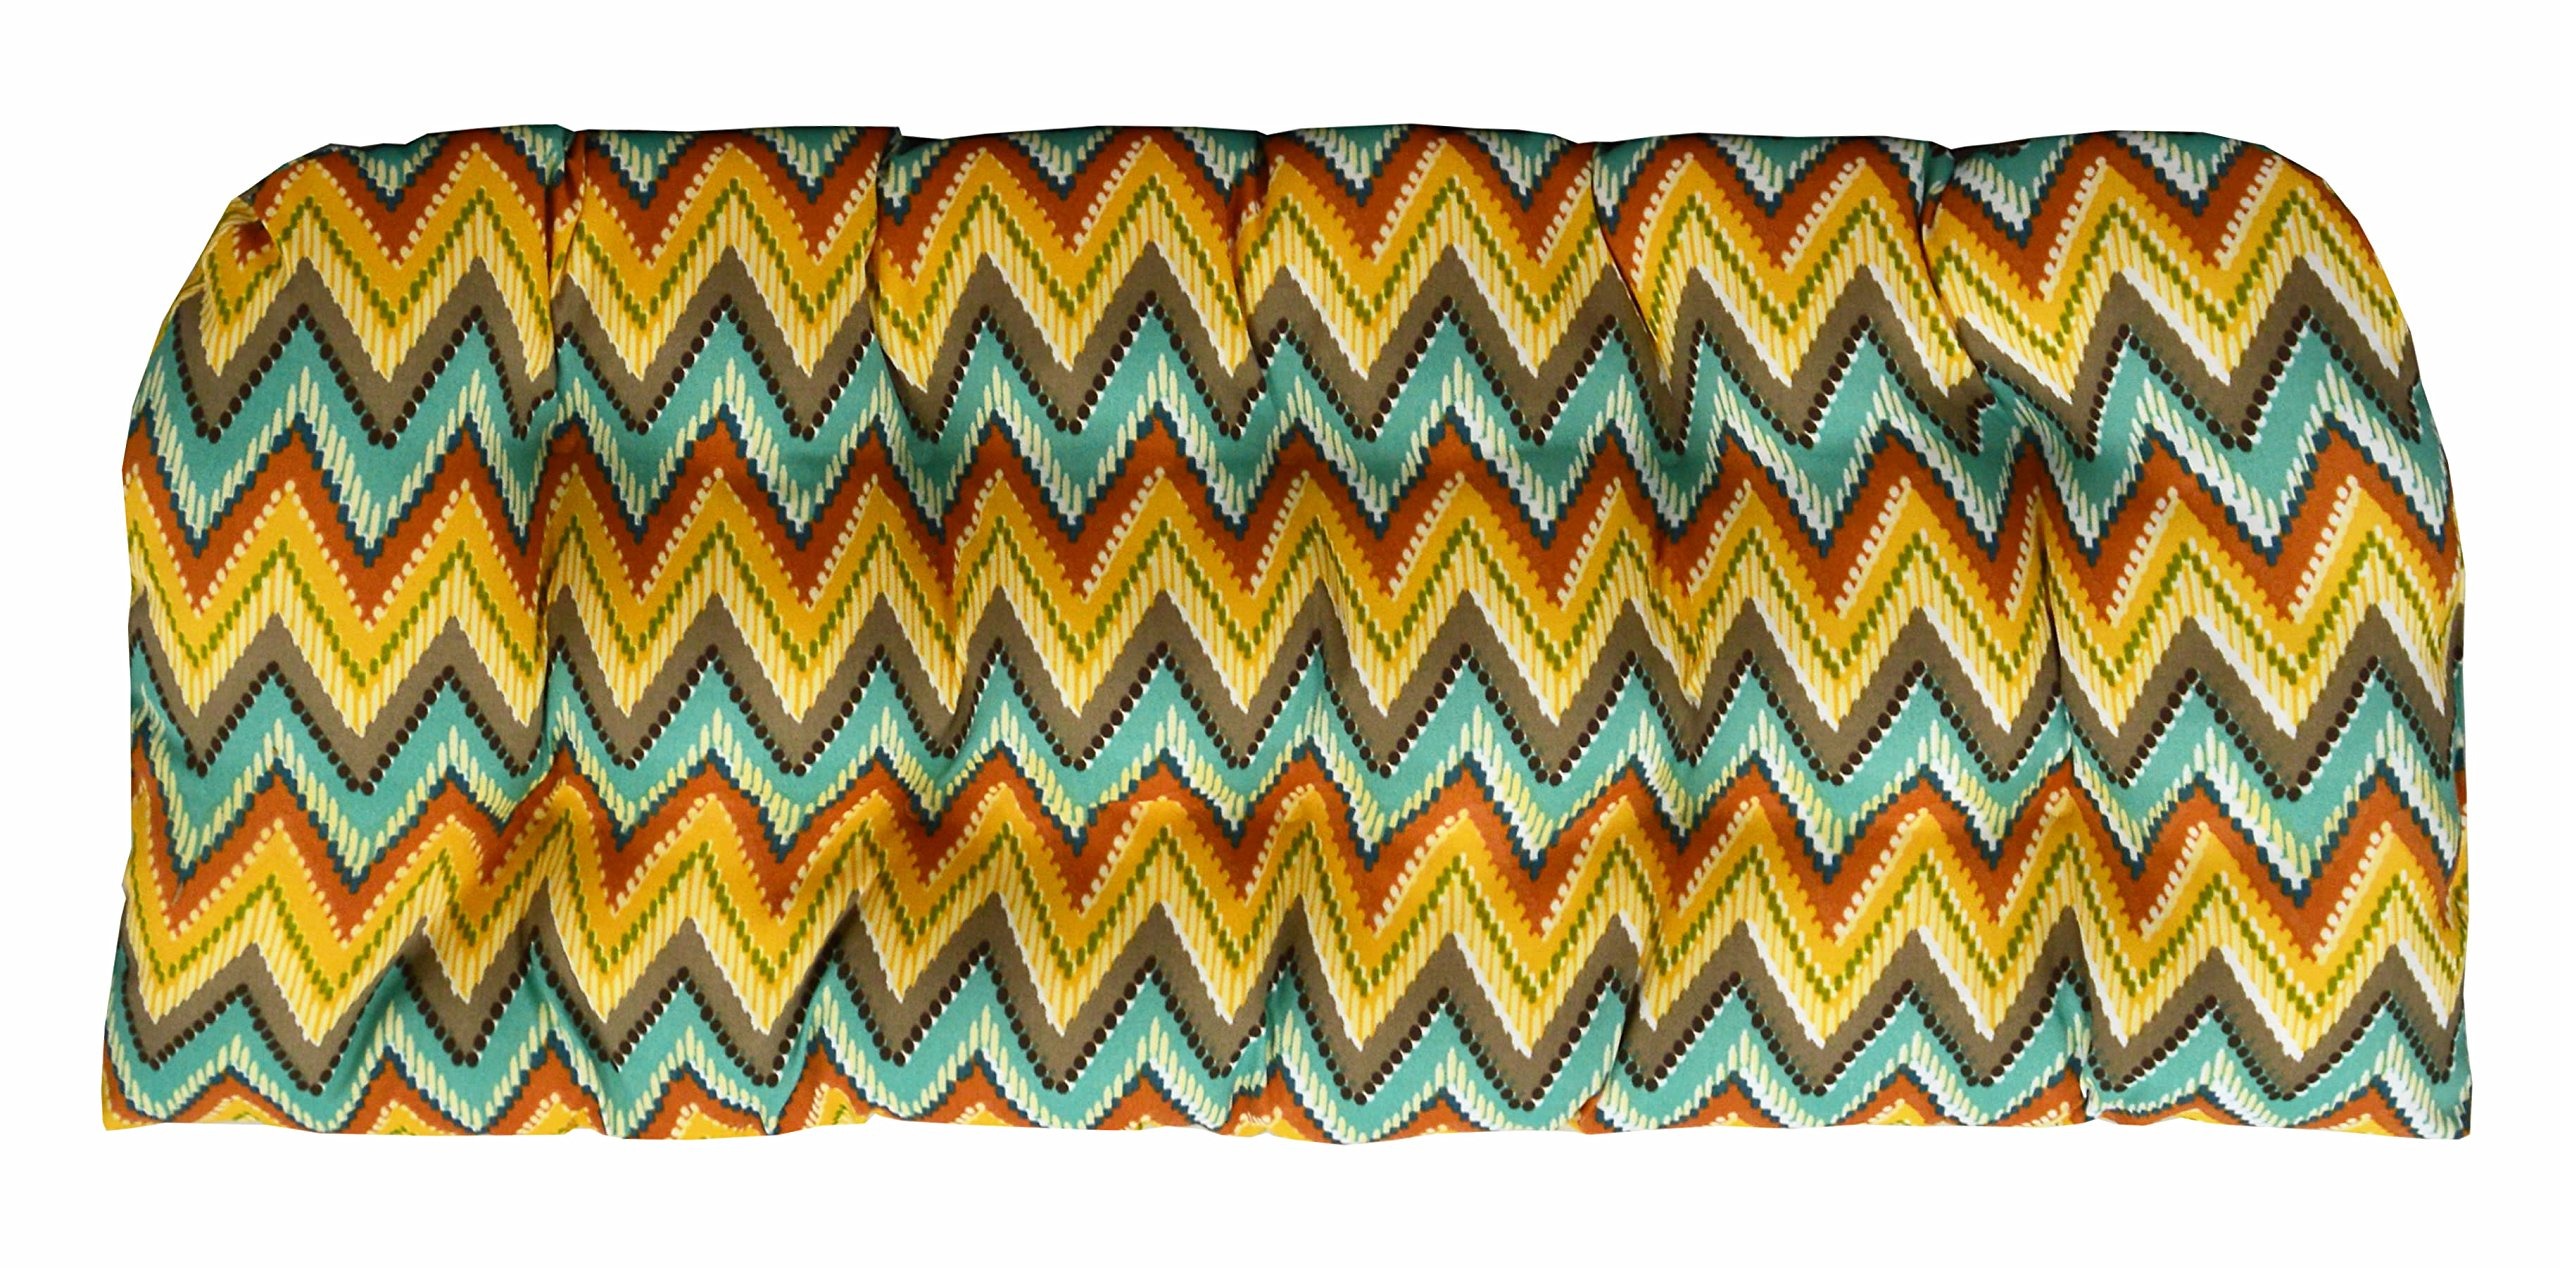 RSH Décor Indoor/Outdoor Wicker Chair Cushion Loveseat Orange Yellow Turquosie Teal Blue Abstract Chevron